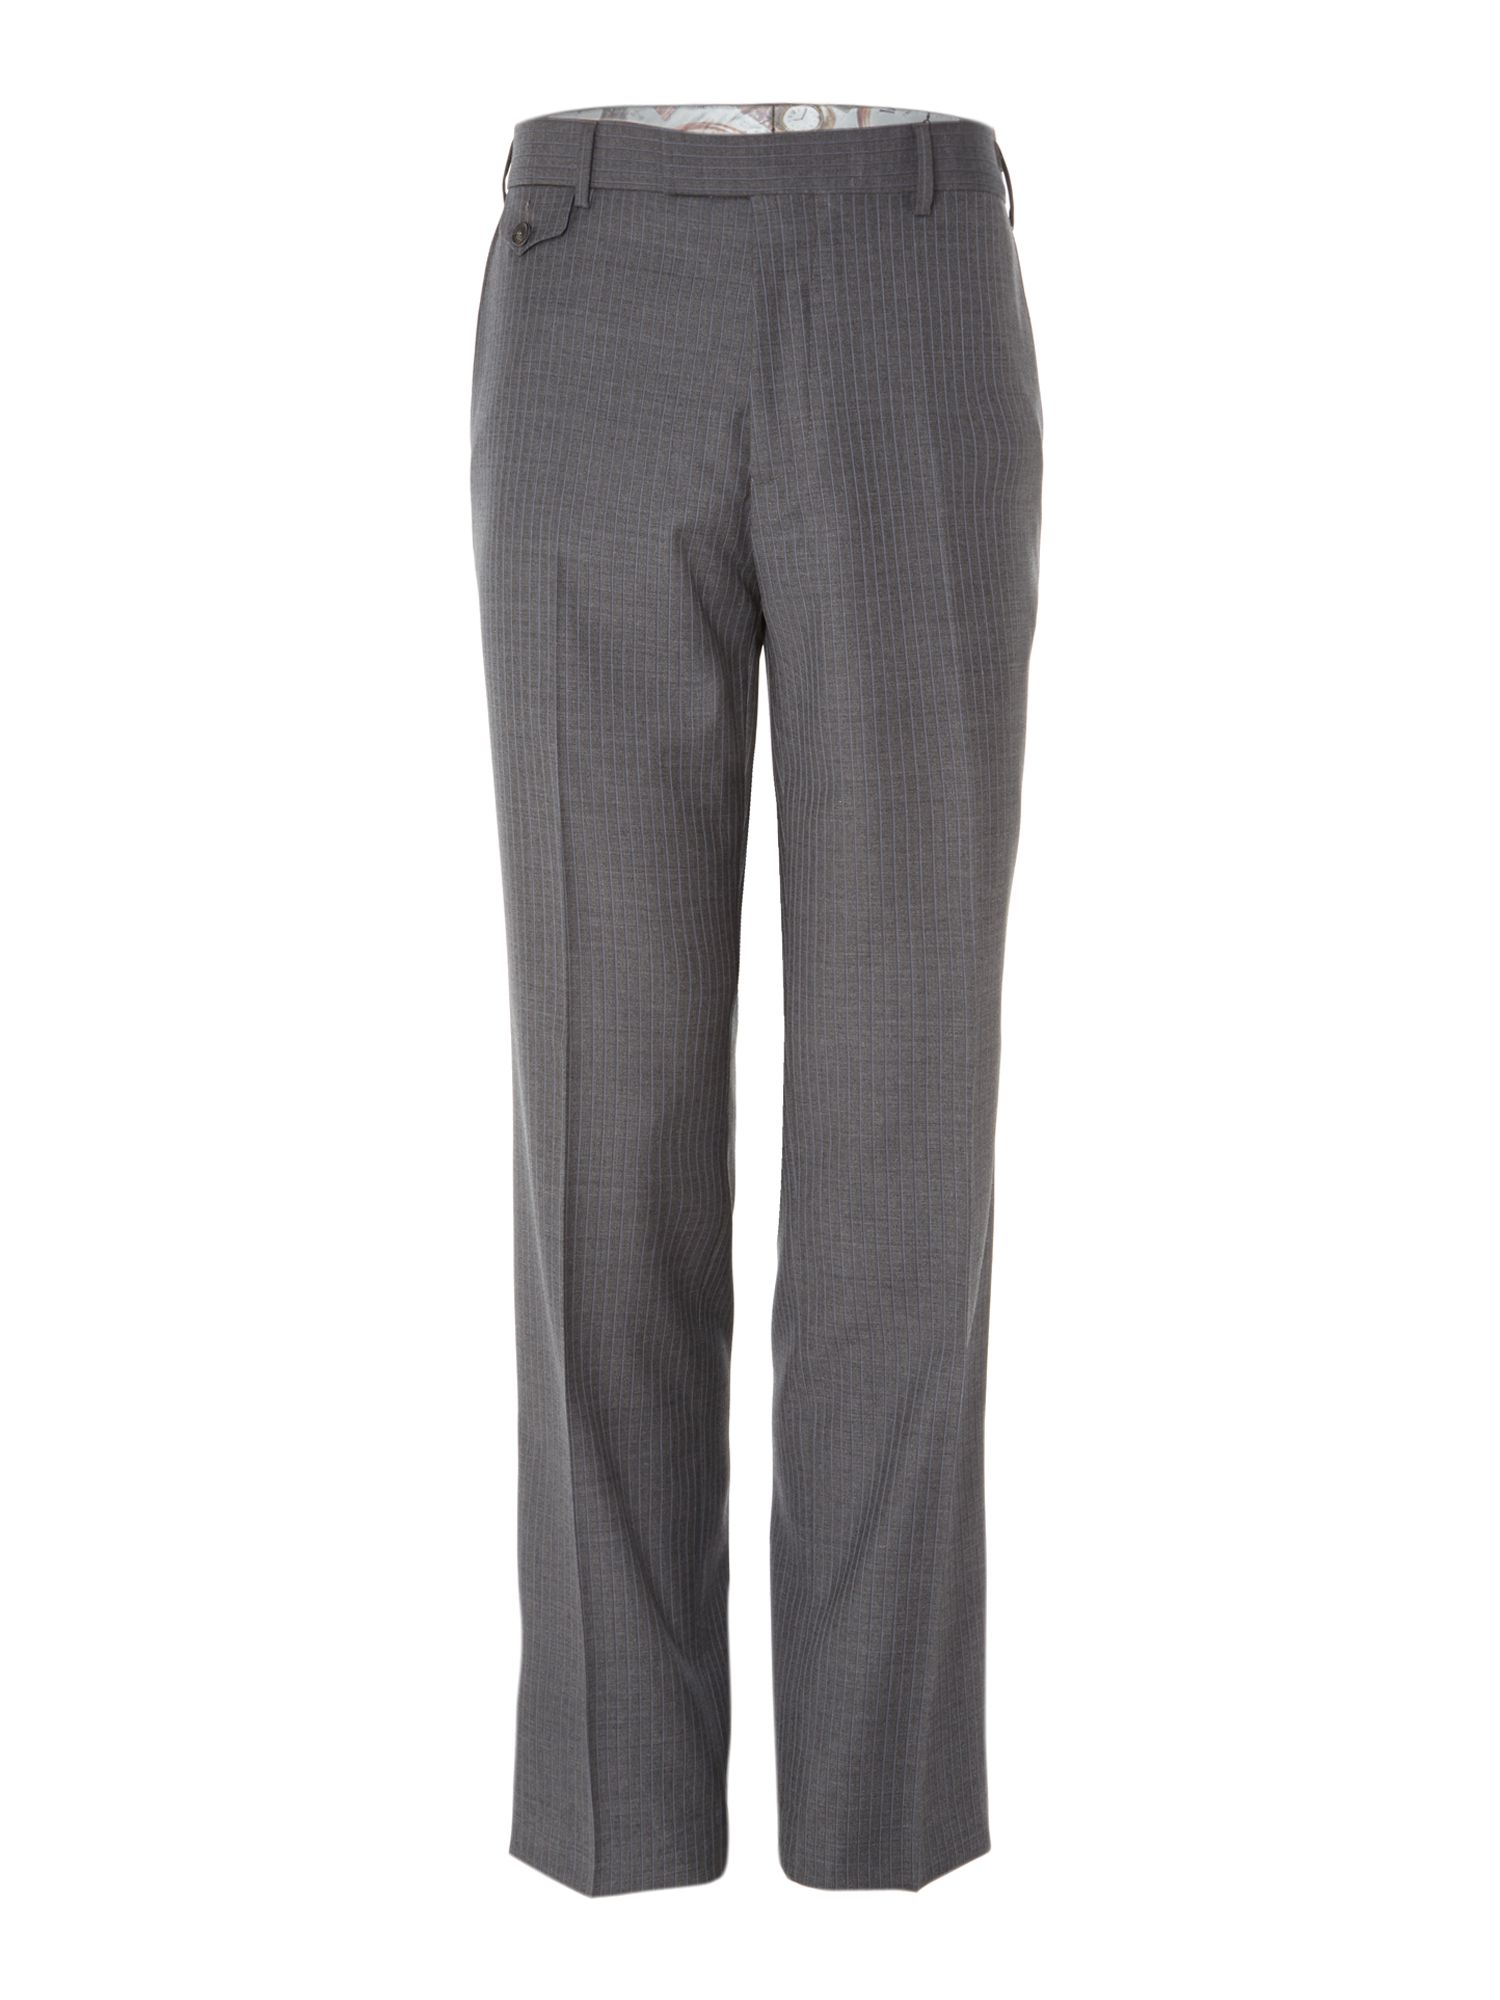 Wilozt sterling regular fit pinstripe trouser